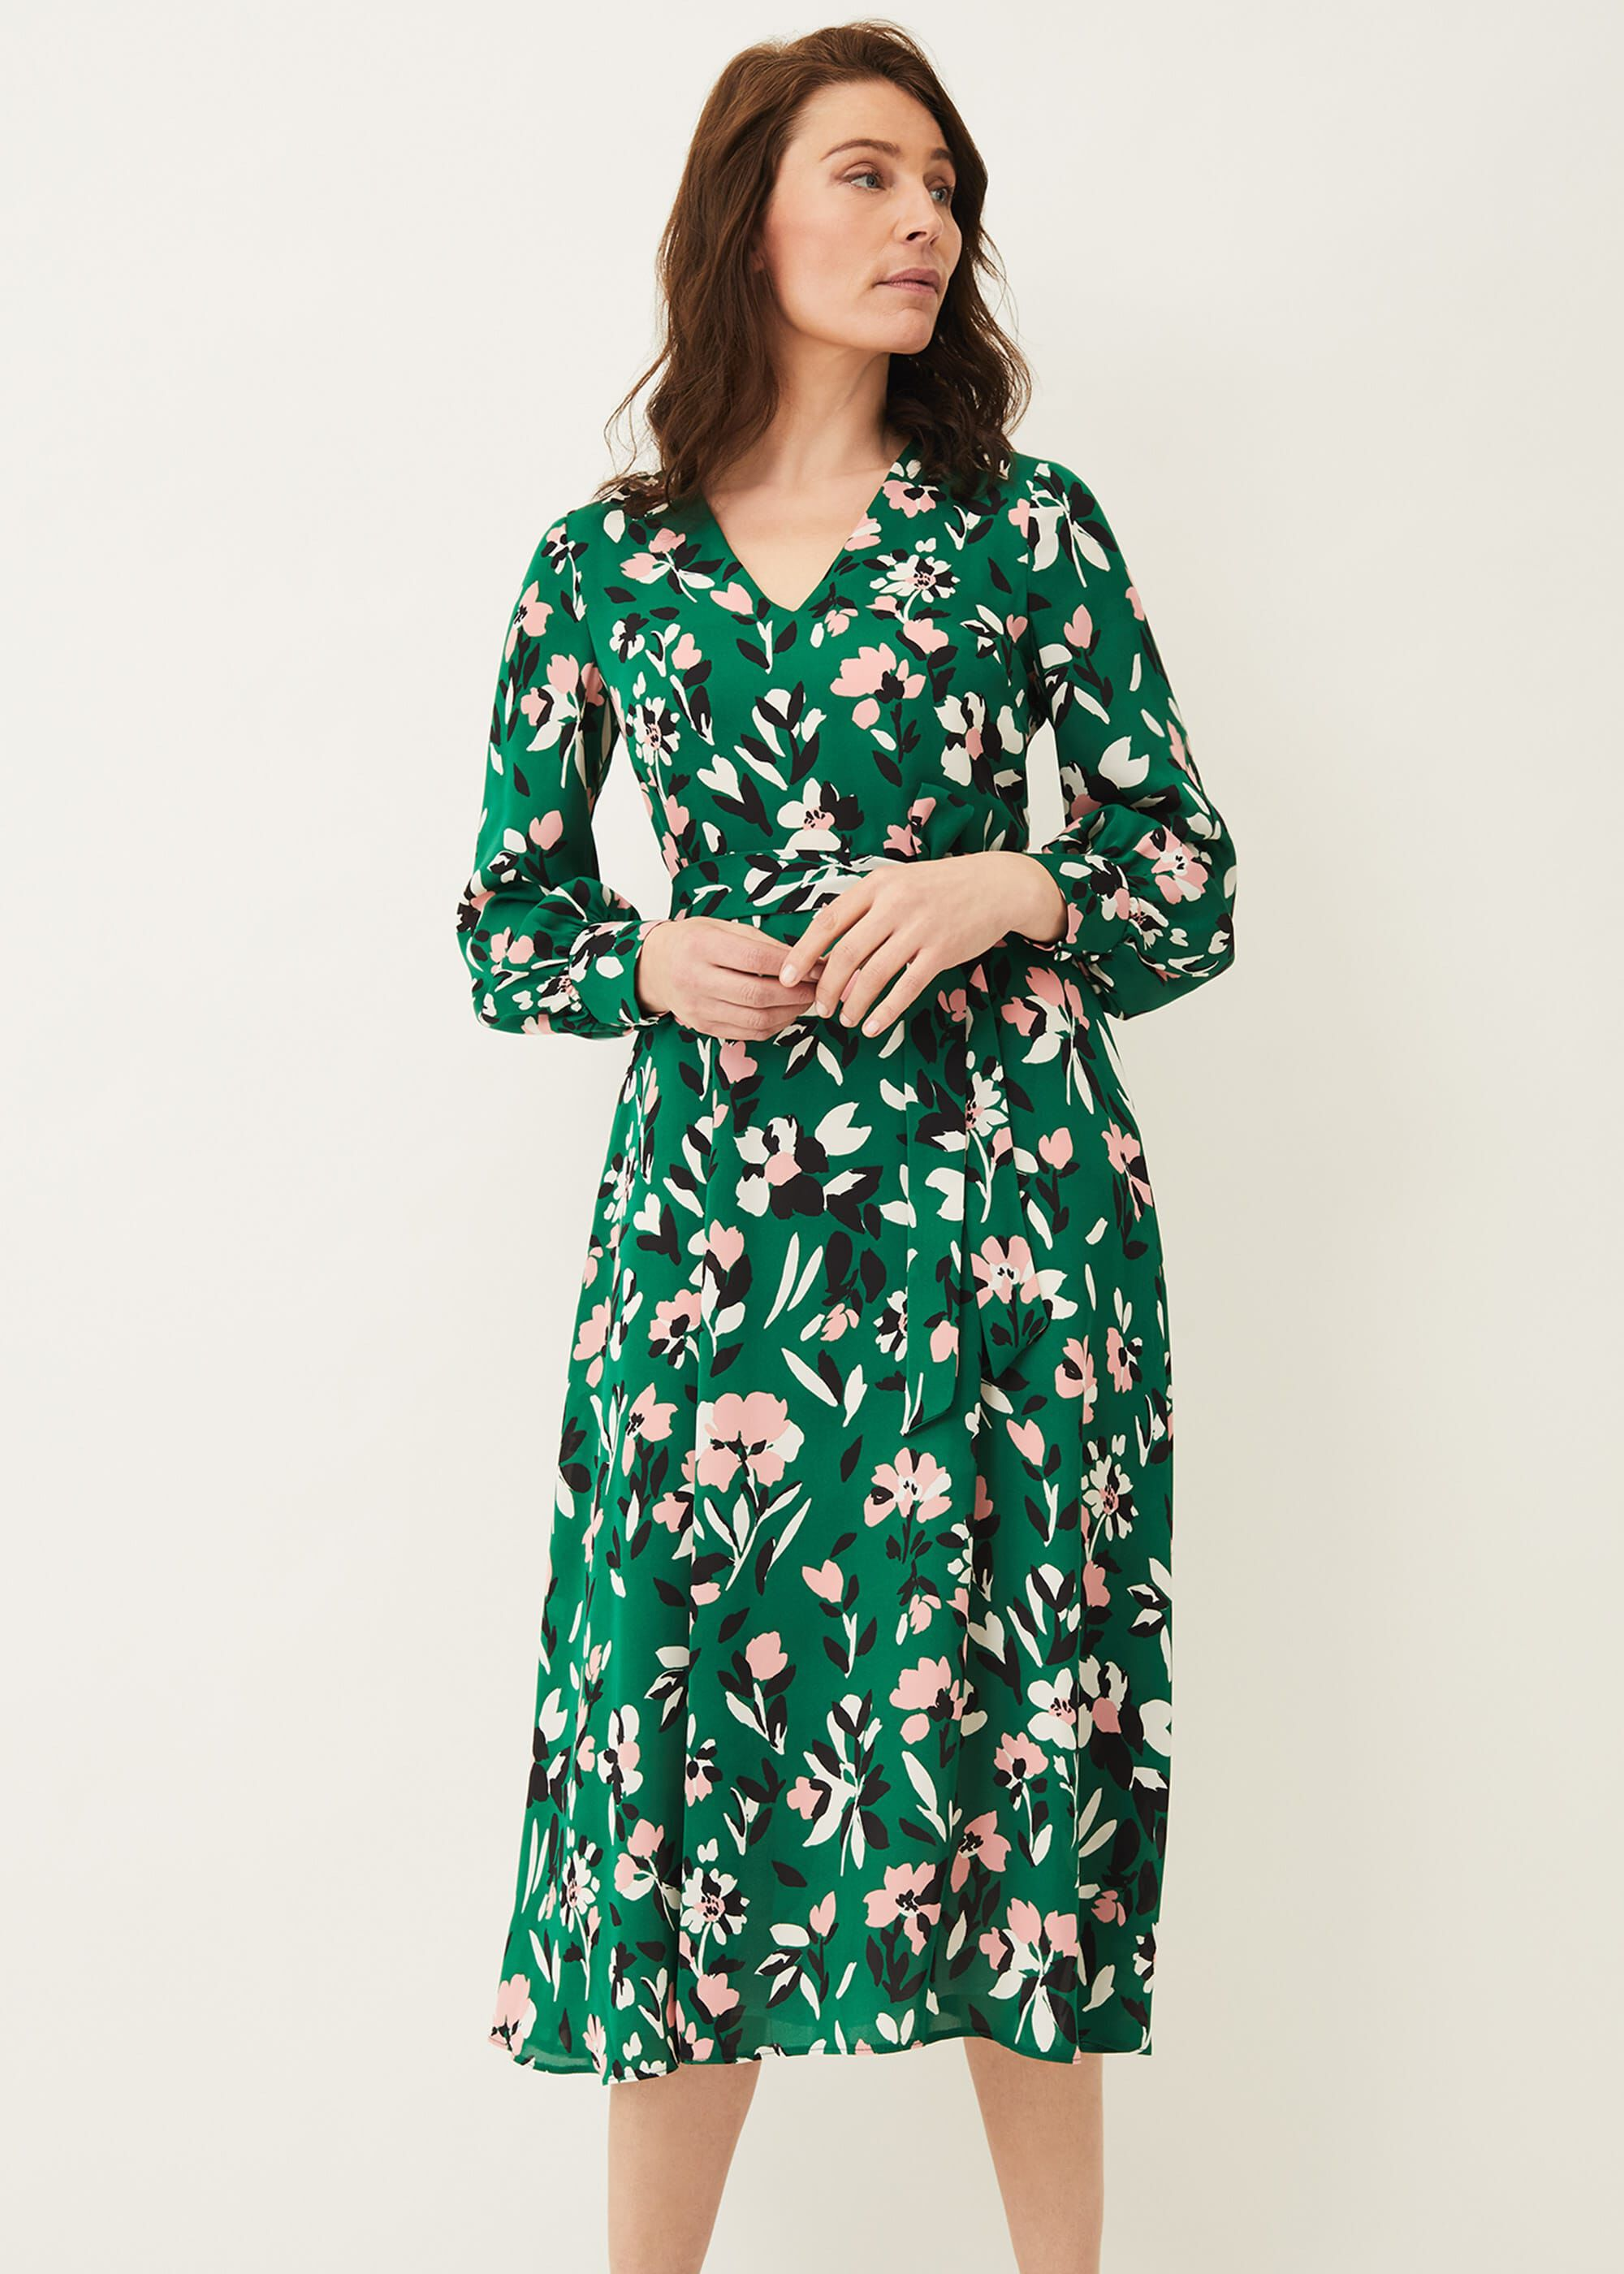 Phase Eight Emmy Floral Dress, Green, Occasion Dress